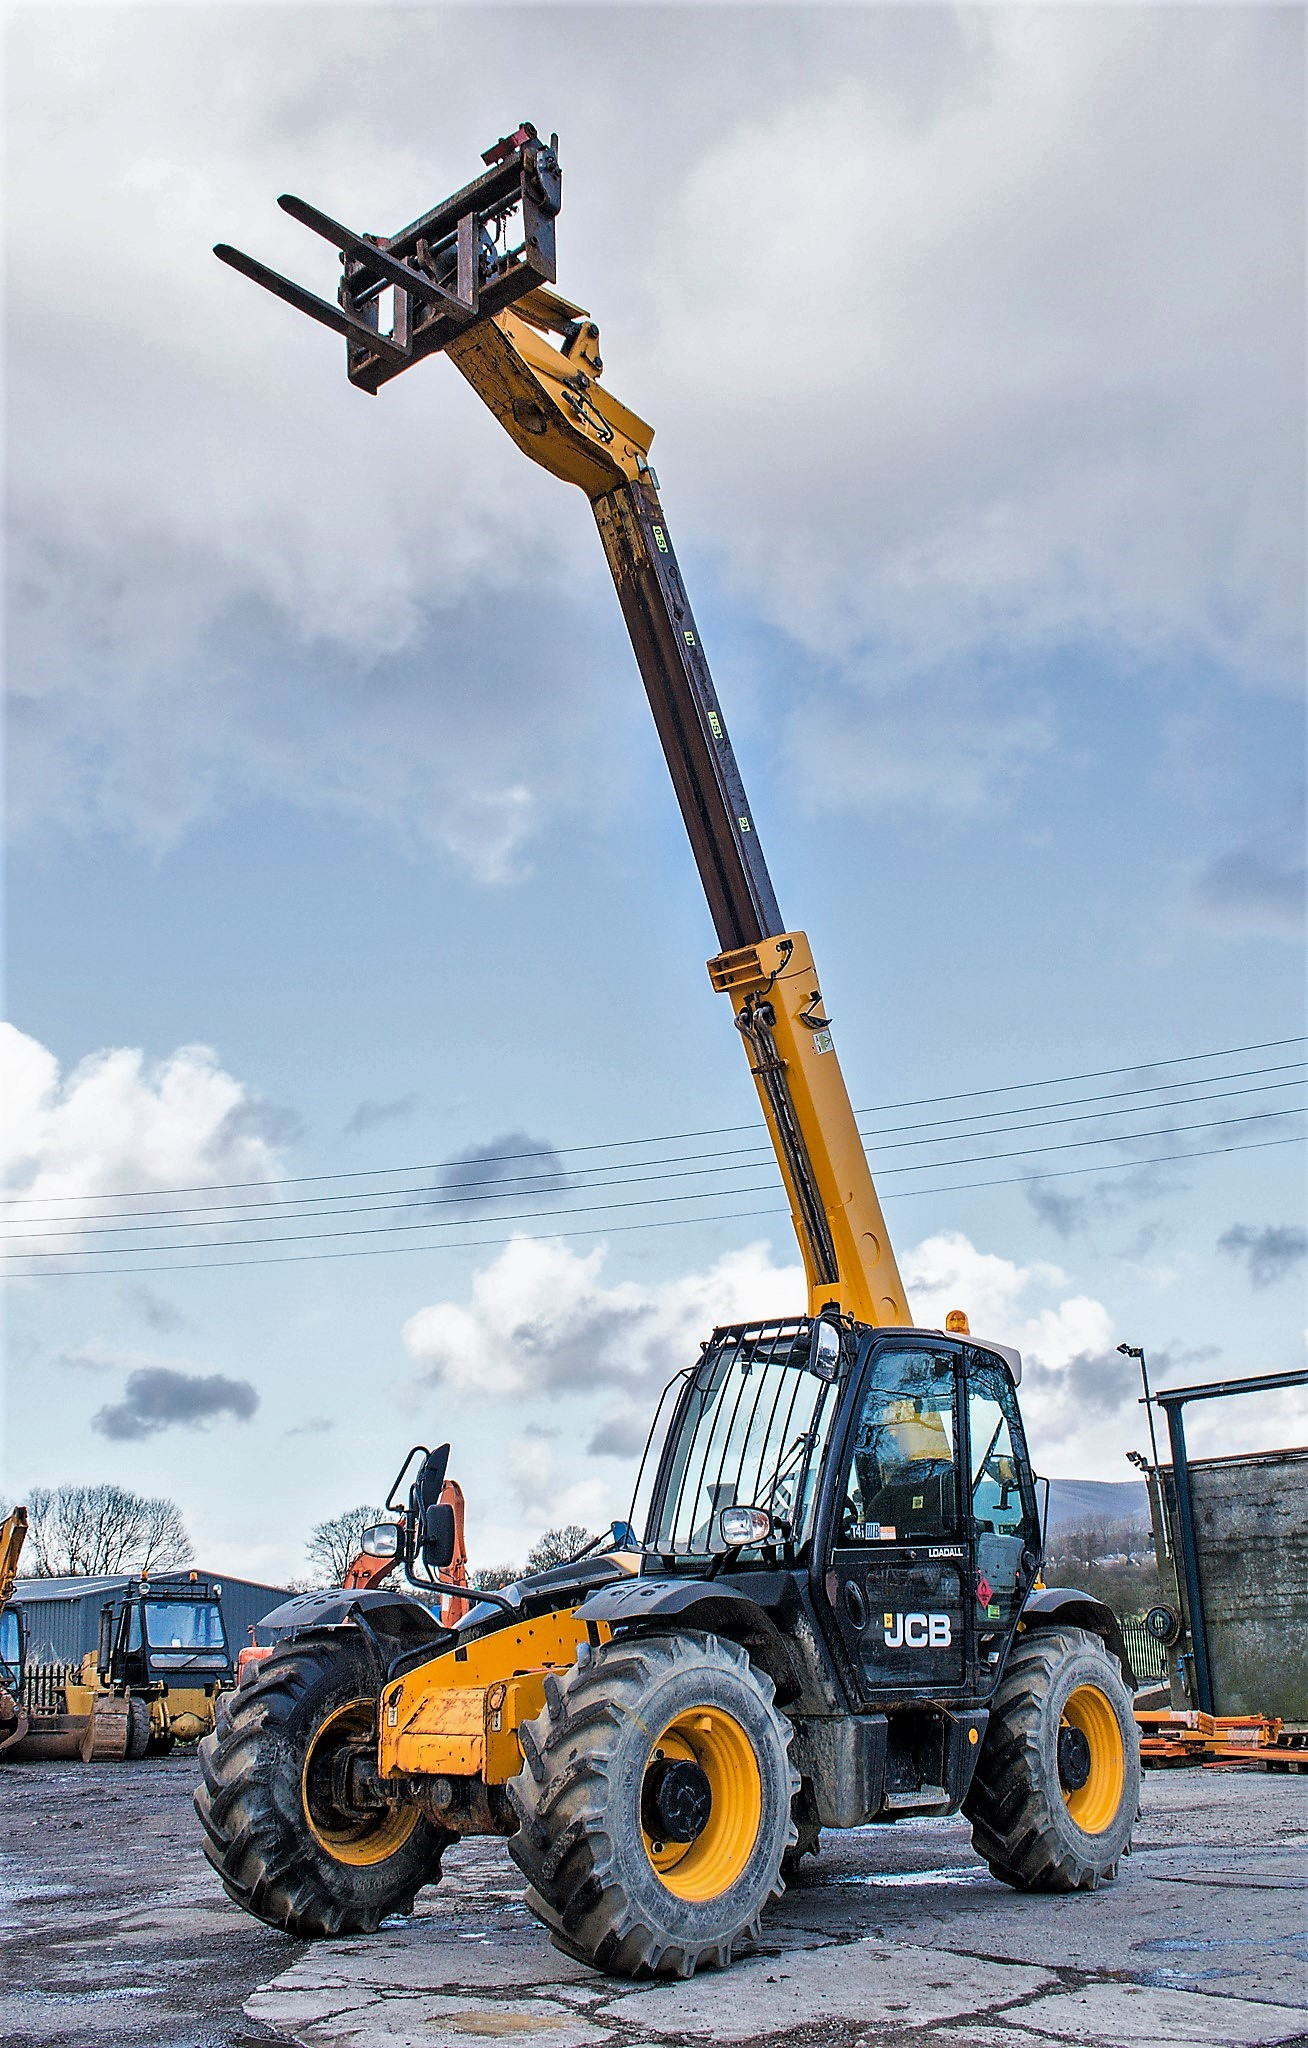 JCB 531-70 7 metre telescopic handler Year: 2013 S/N: 2176575 Reg No: MX13 PHY Recorded Hours: - Image 9 of 19